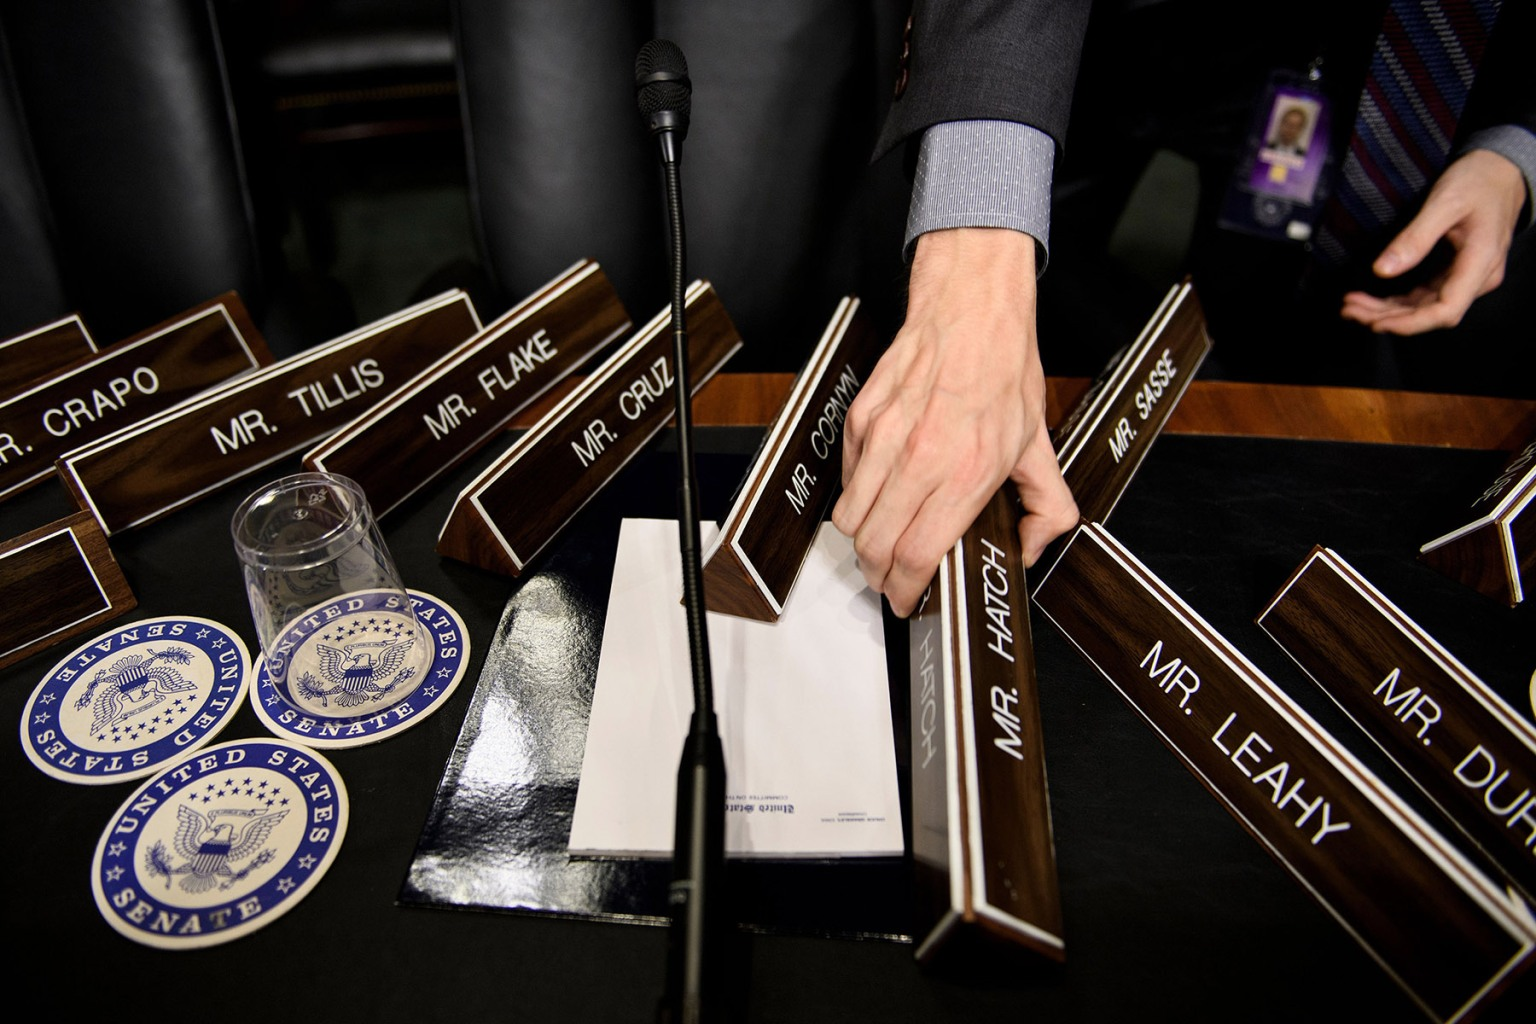 A staff member places nameplates in the committee's room on Capitol Hill ahead of the hearing on Supreme Court nominee Brett Kavanaugh on Sept. 26. BRENDAN SMIALOWSKI/AFP/Getty Images